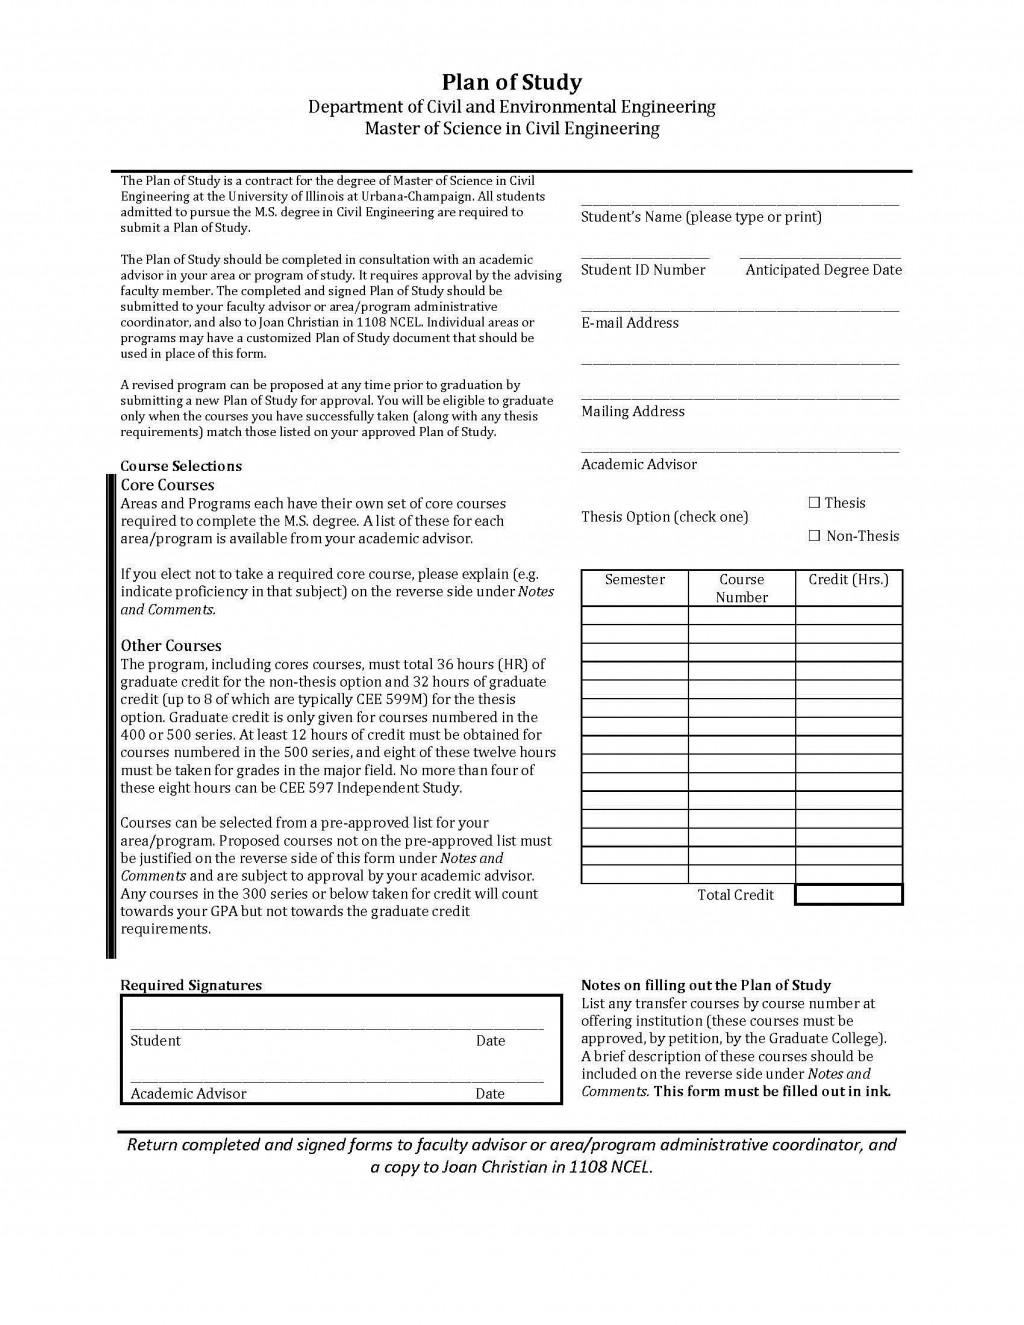 018 Plan Of Study Research Paper Awesome Form Format Apa Scientific Example Large